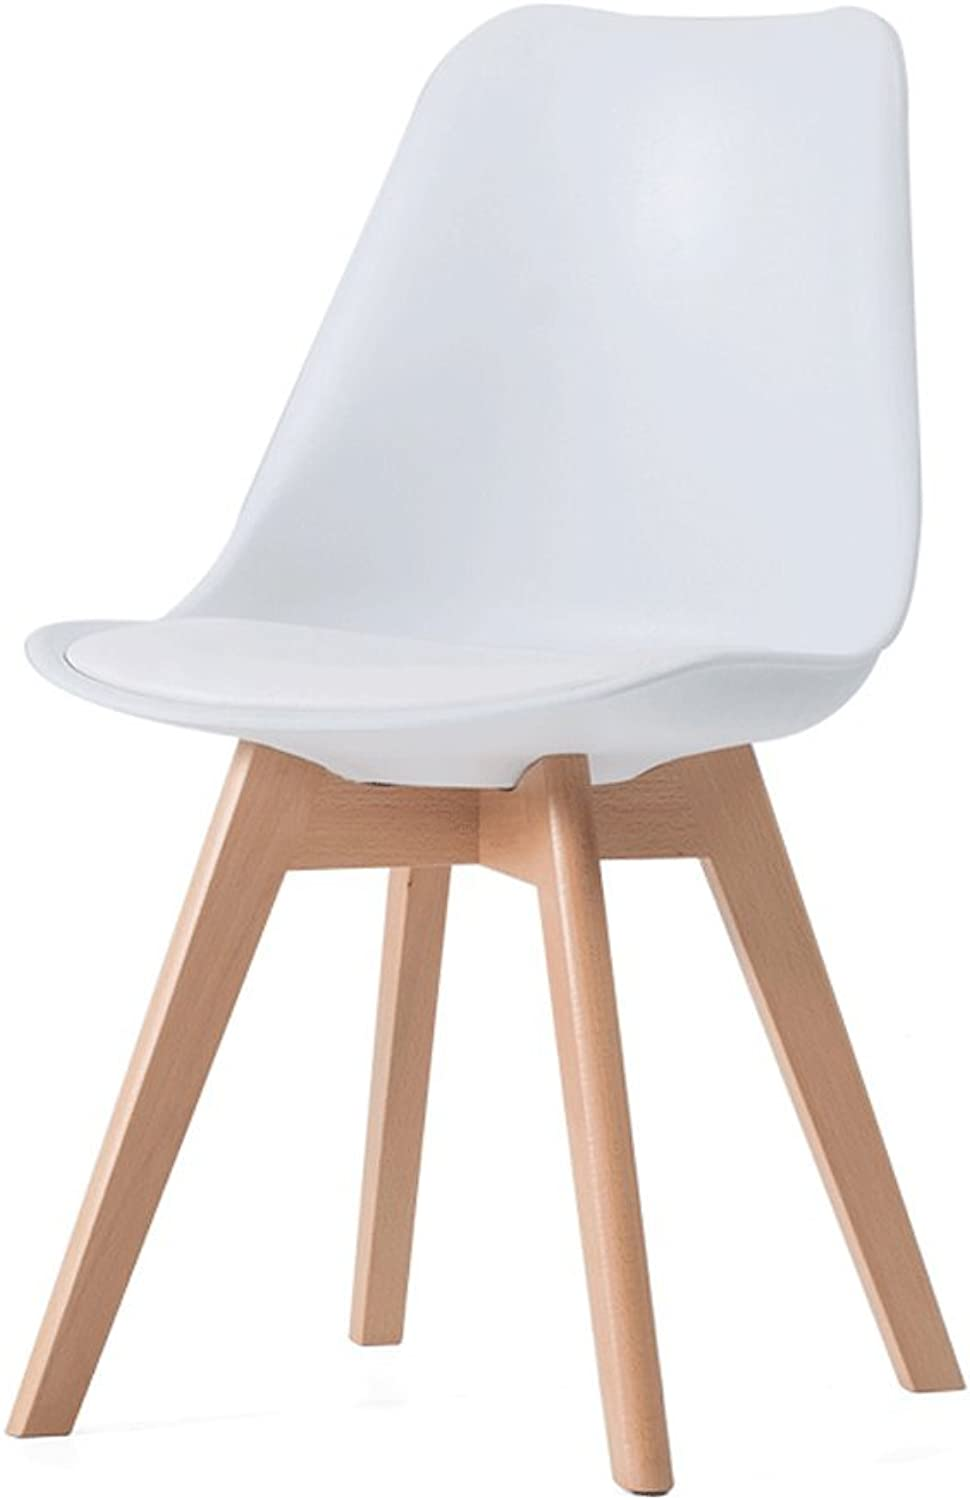 TXXM Barstools Solid Wood Chair Home Dining Chair Adult Chair Lounge Chair (color   White)